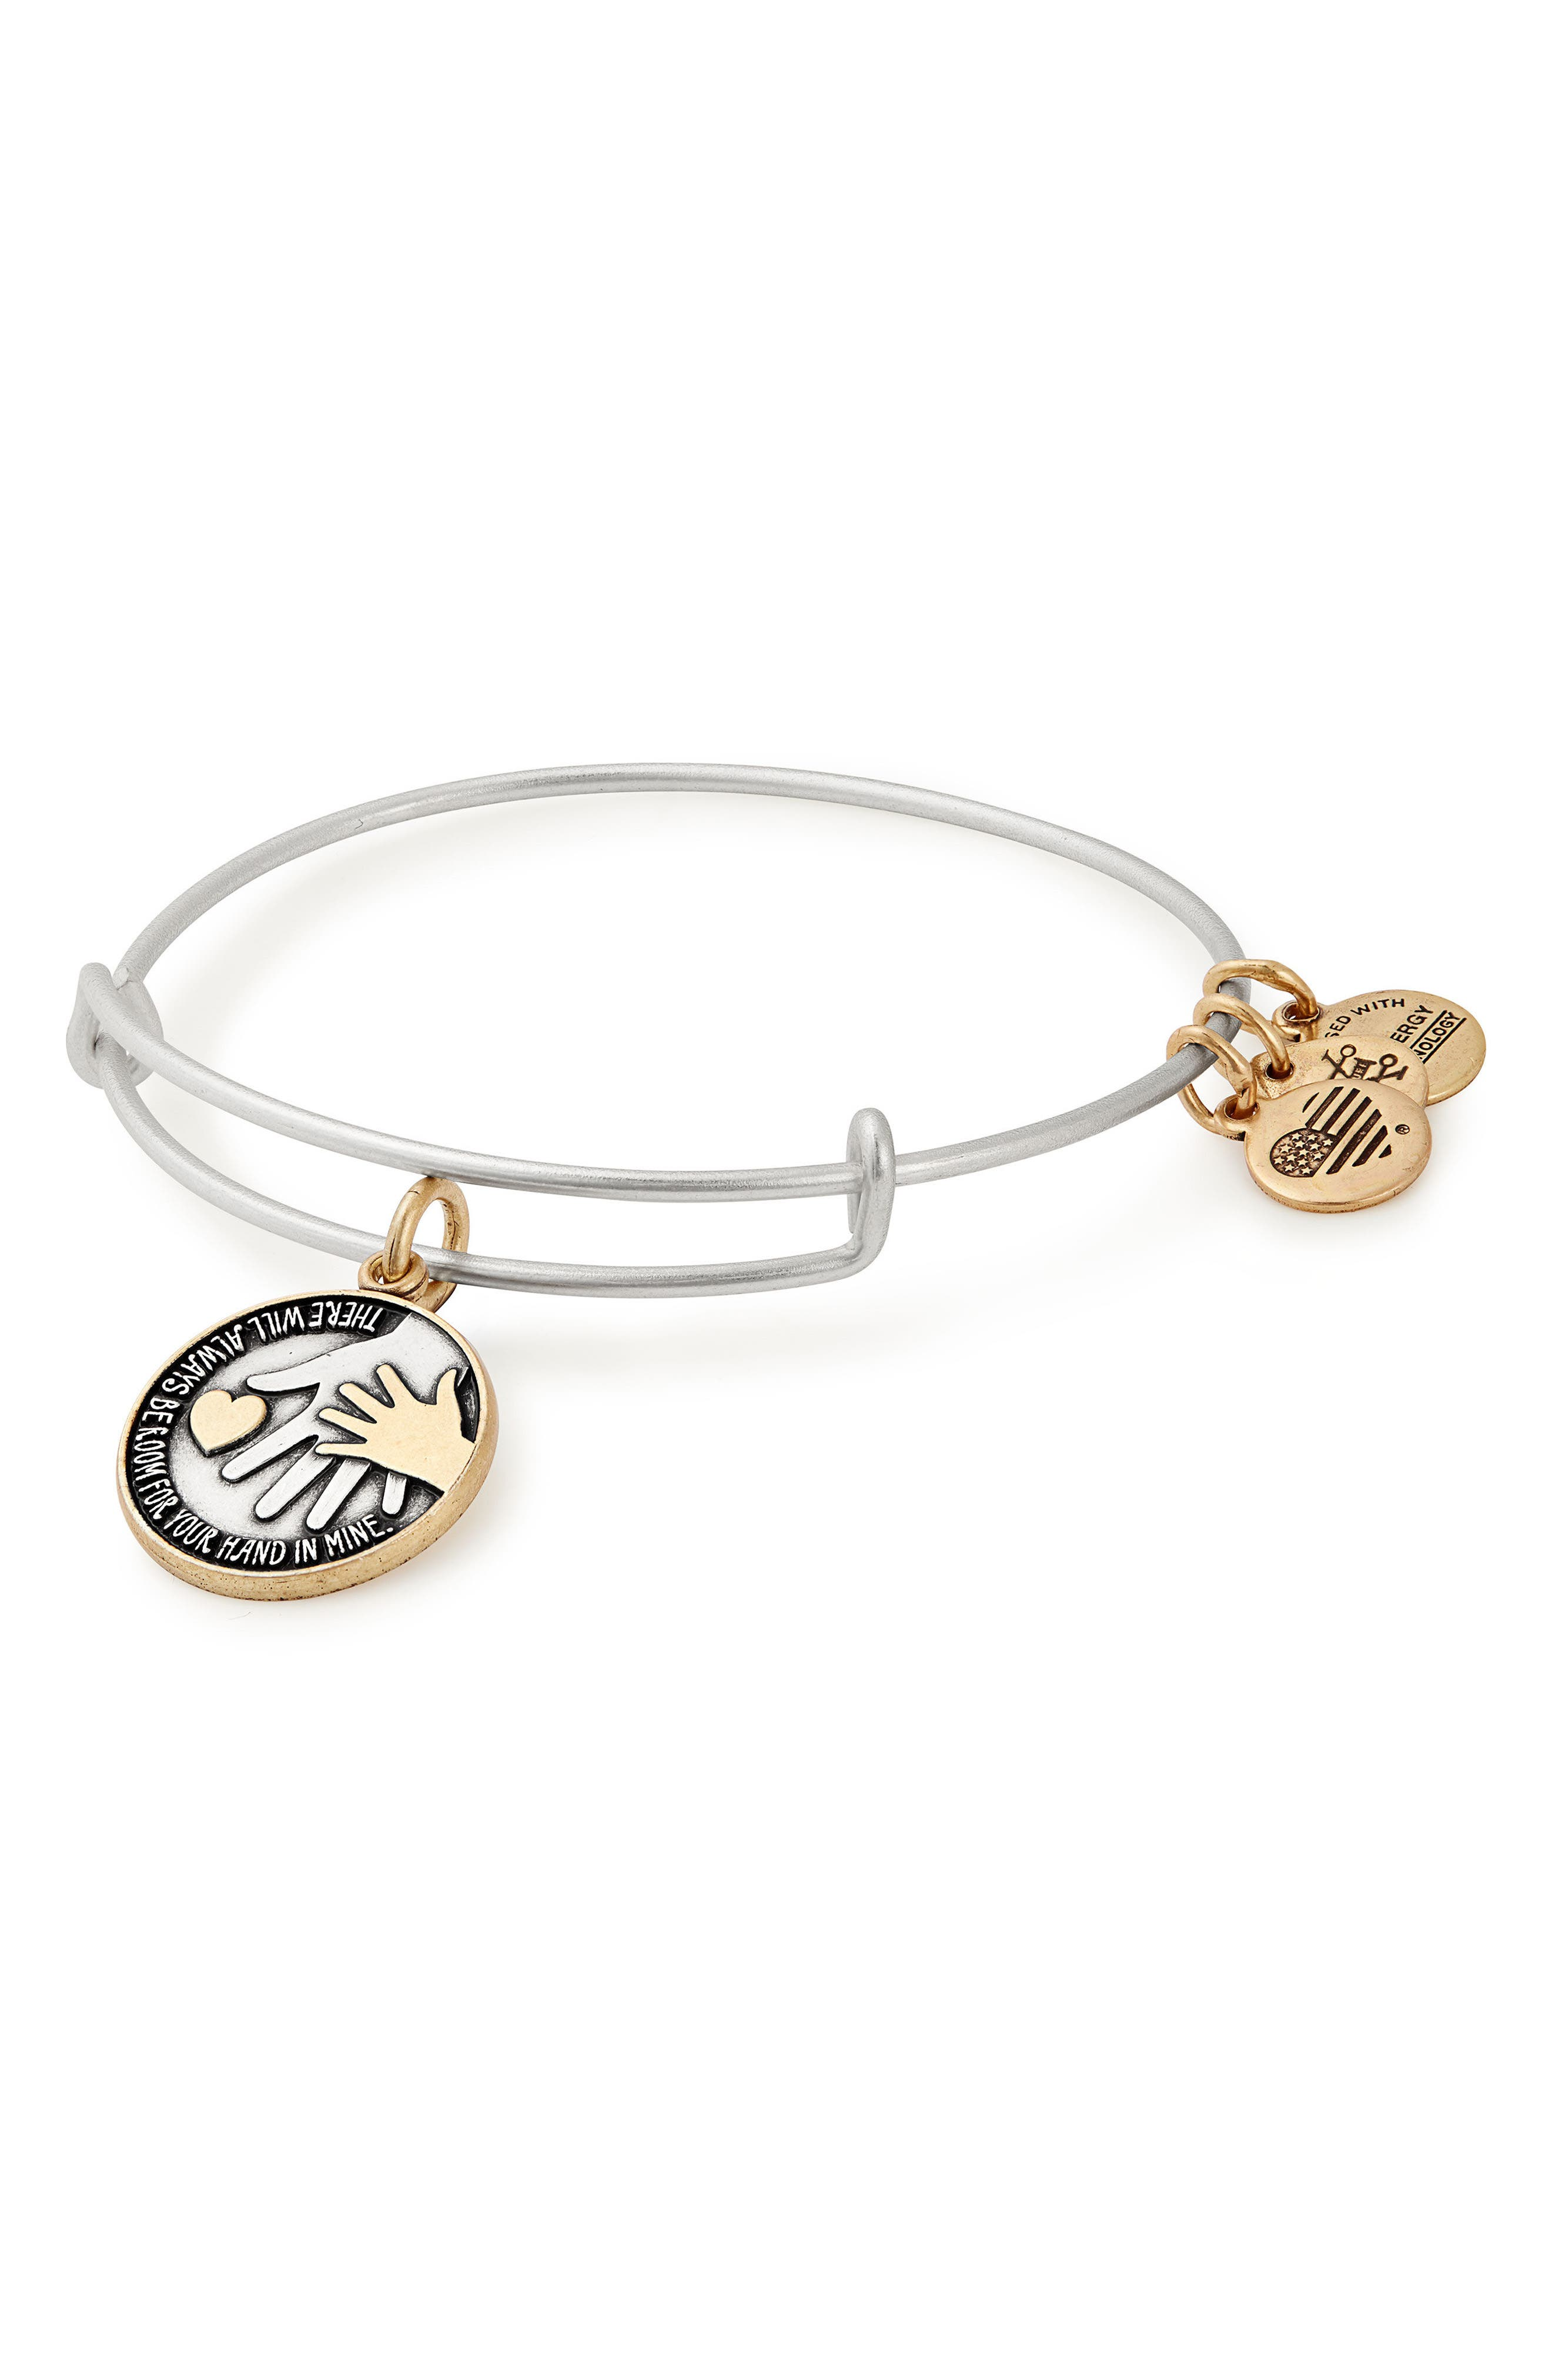 Alex and Ani Hand in Hand Two-Tone Adjustable Bracelet